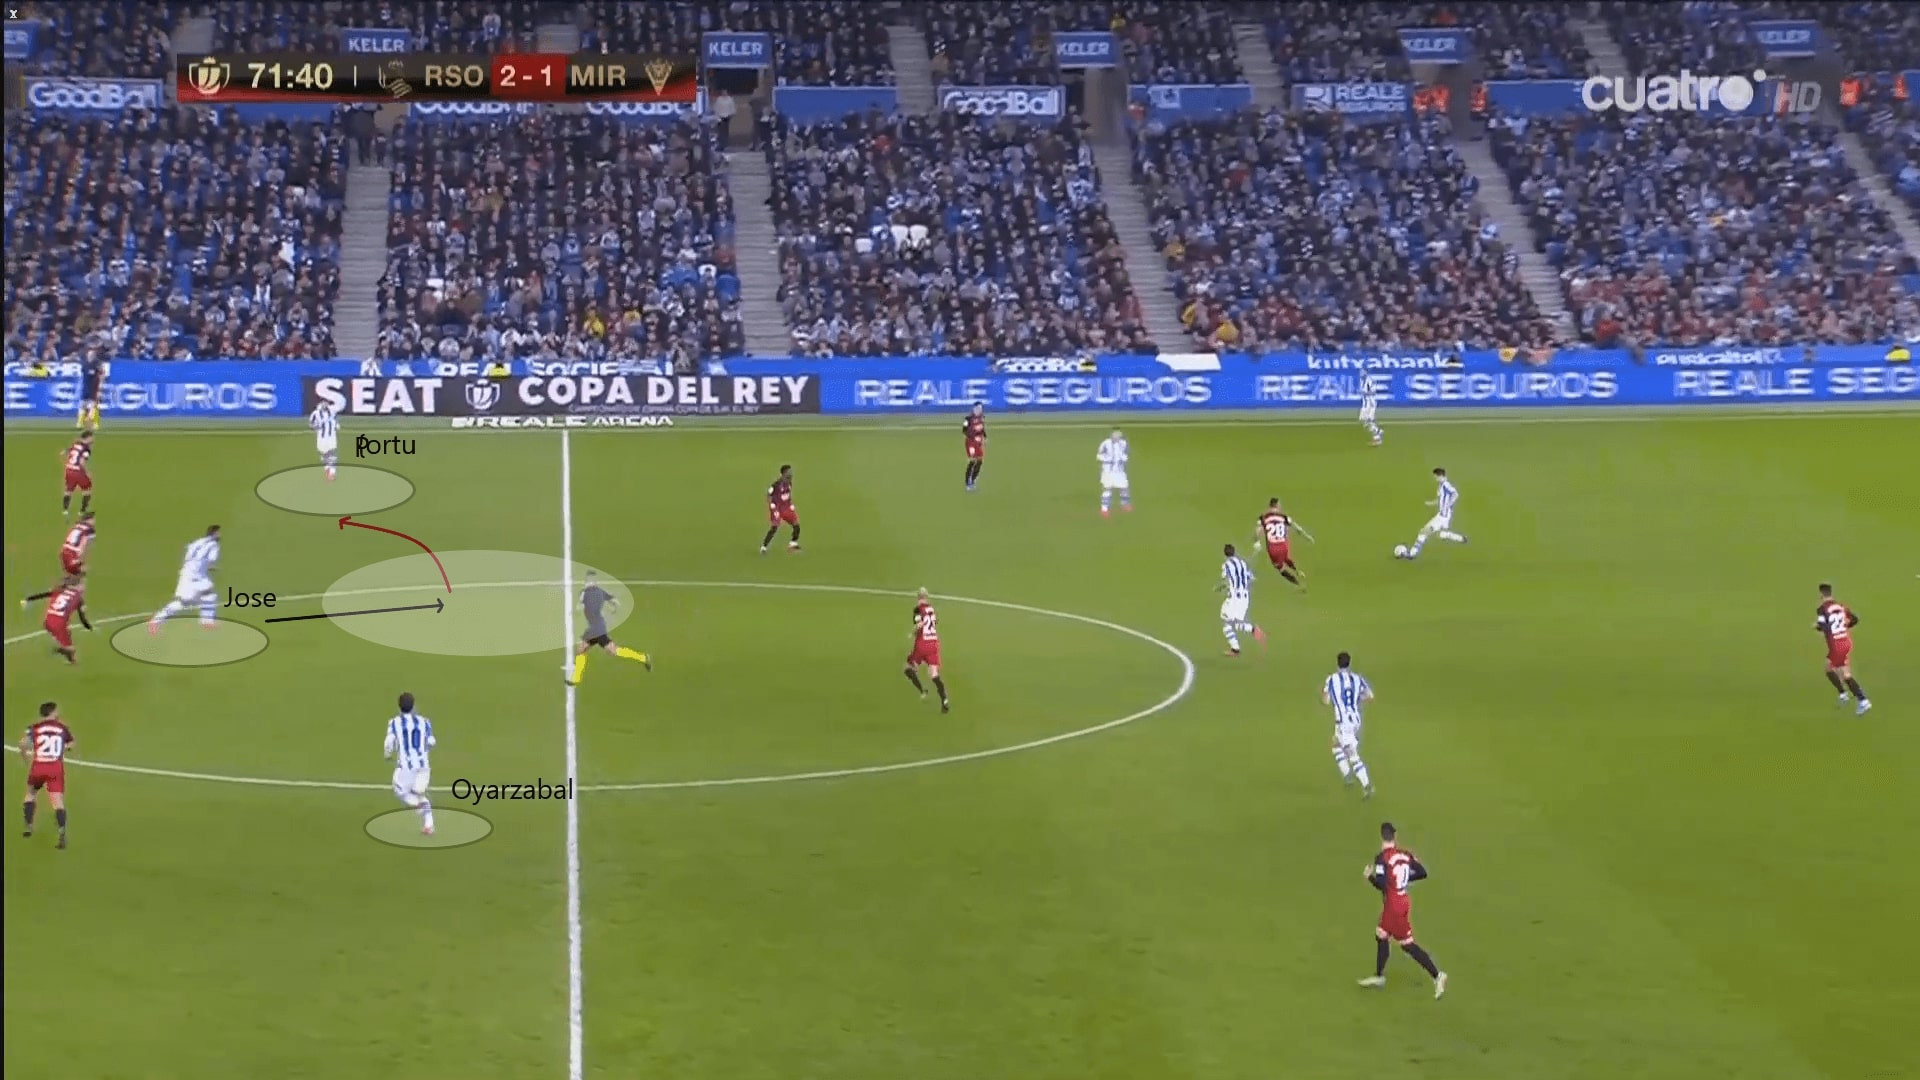 Copa del Rey 2019/20: Real Sociedad vs Mirandes - tactical analysis tactics